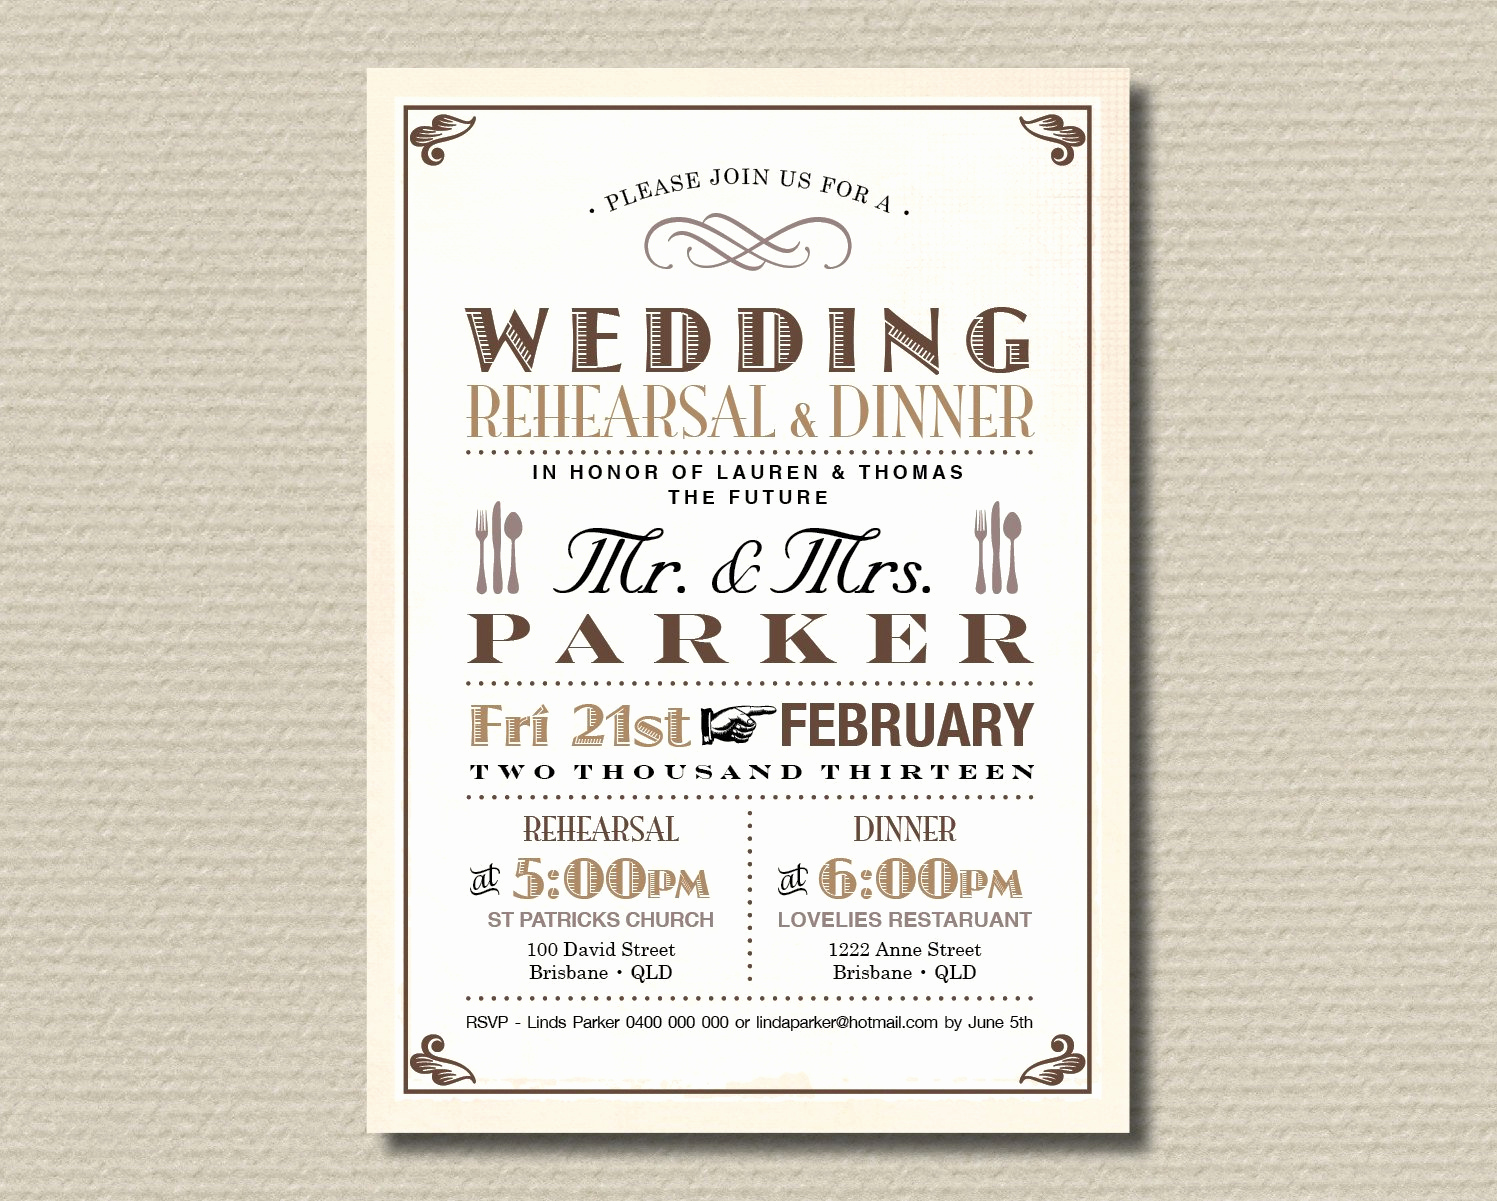 Cute Rehearsal Dinner Invitation Wording Luxury Cute Rehearsal Dinner Invitations